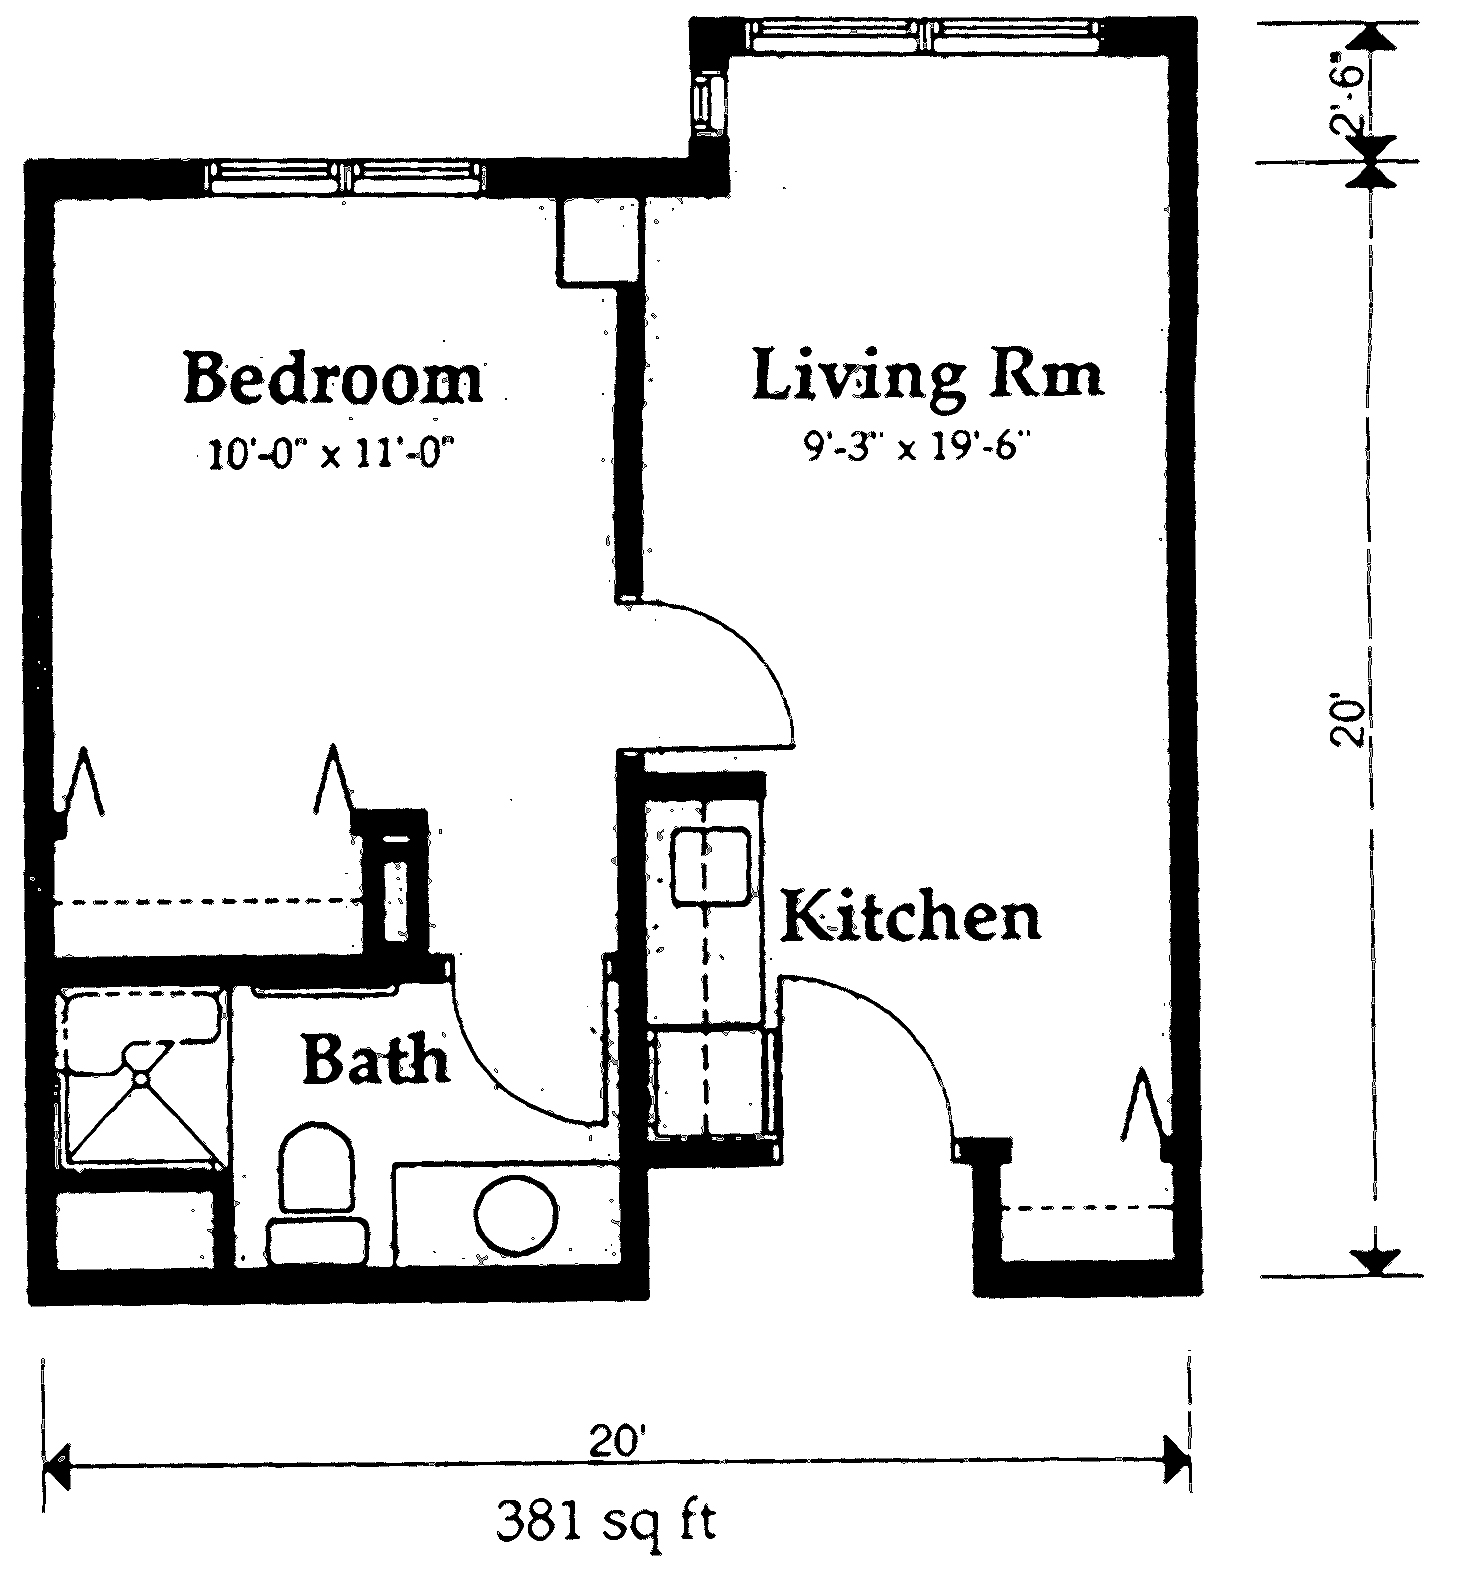 assisted living room layout 2